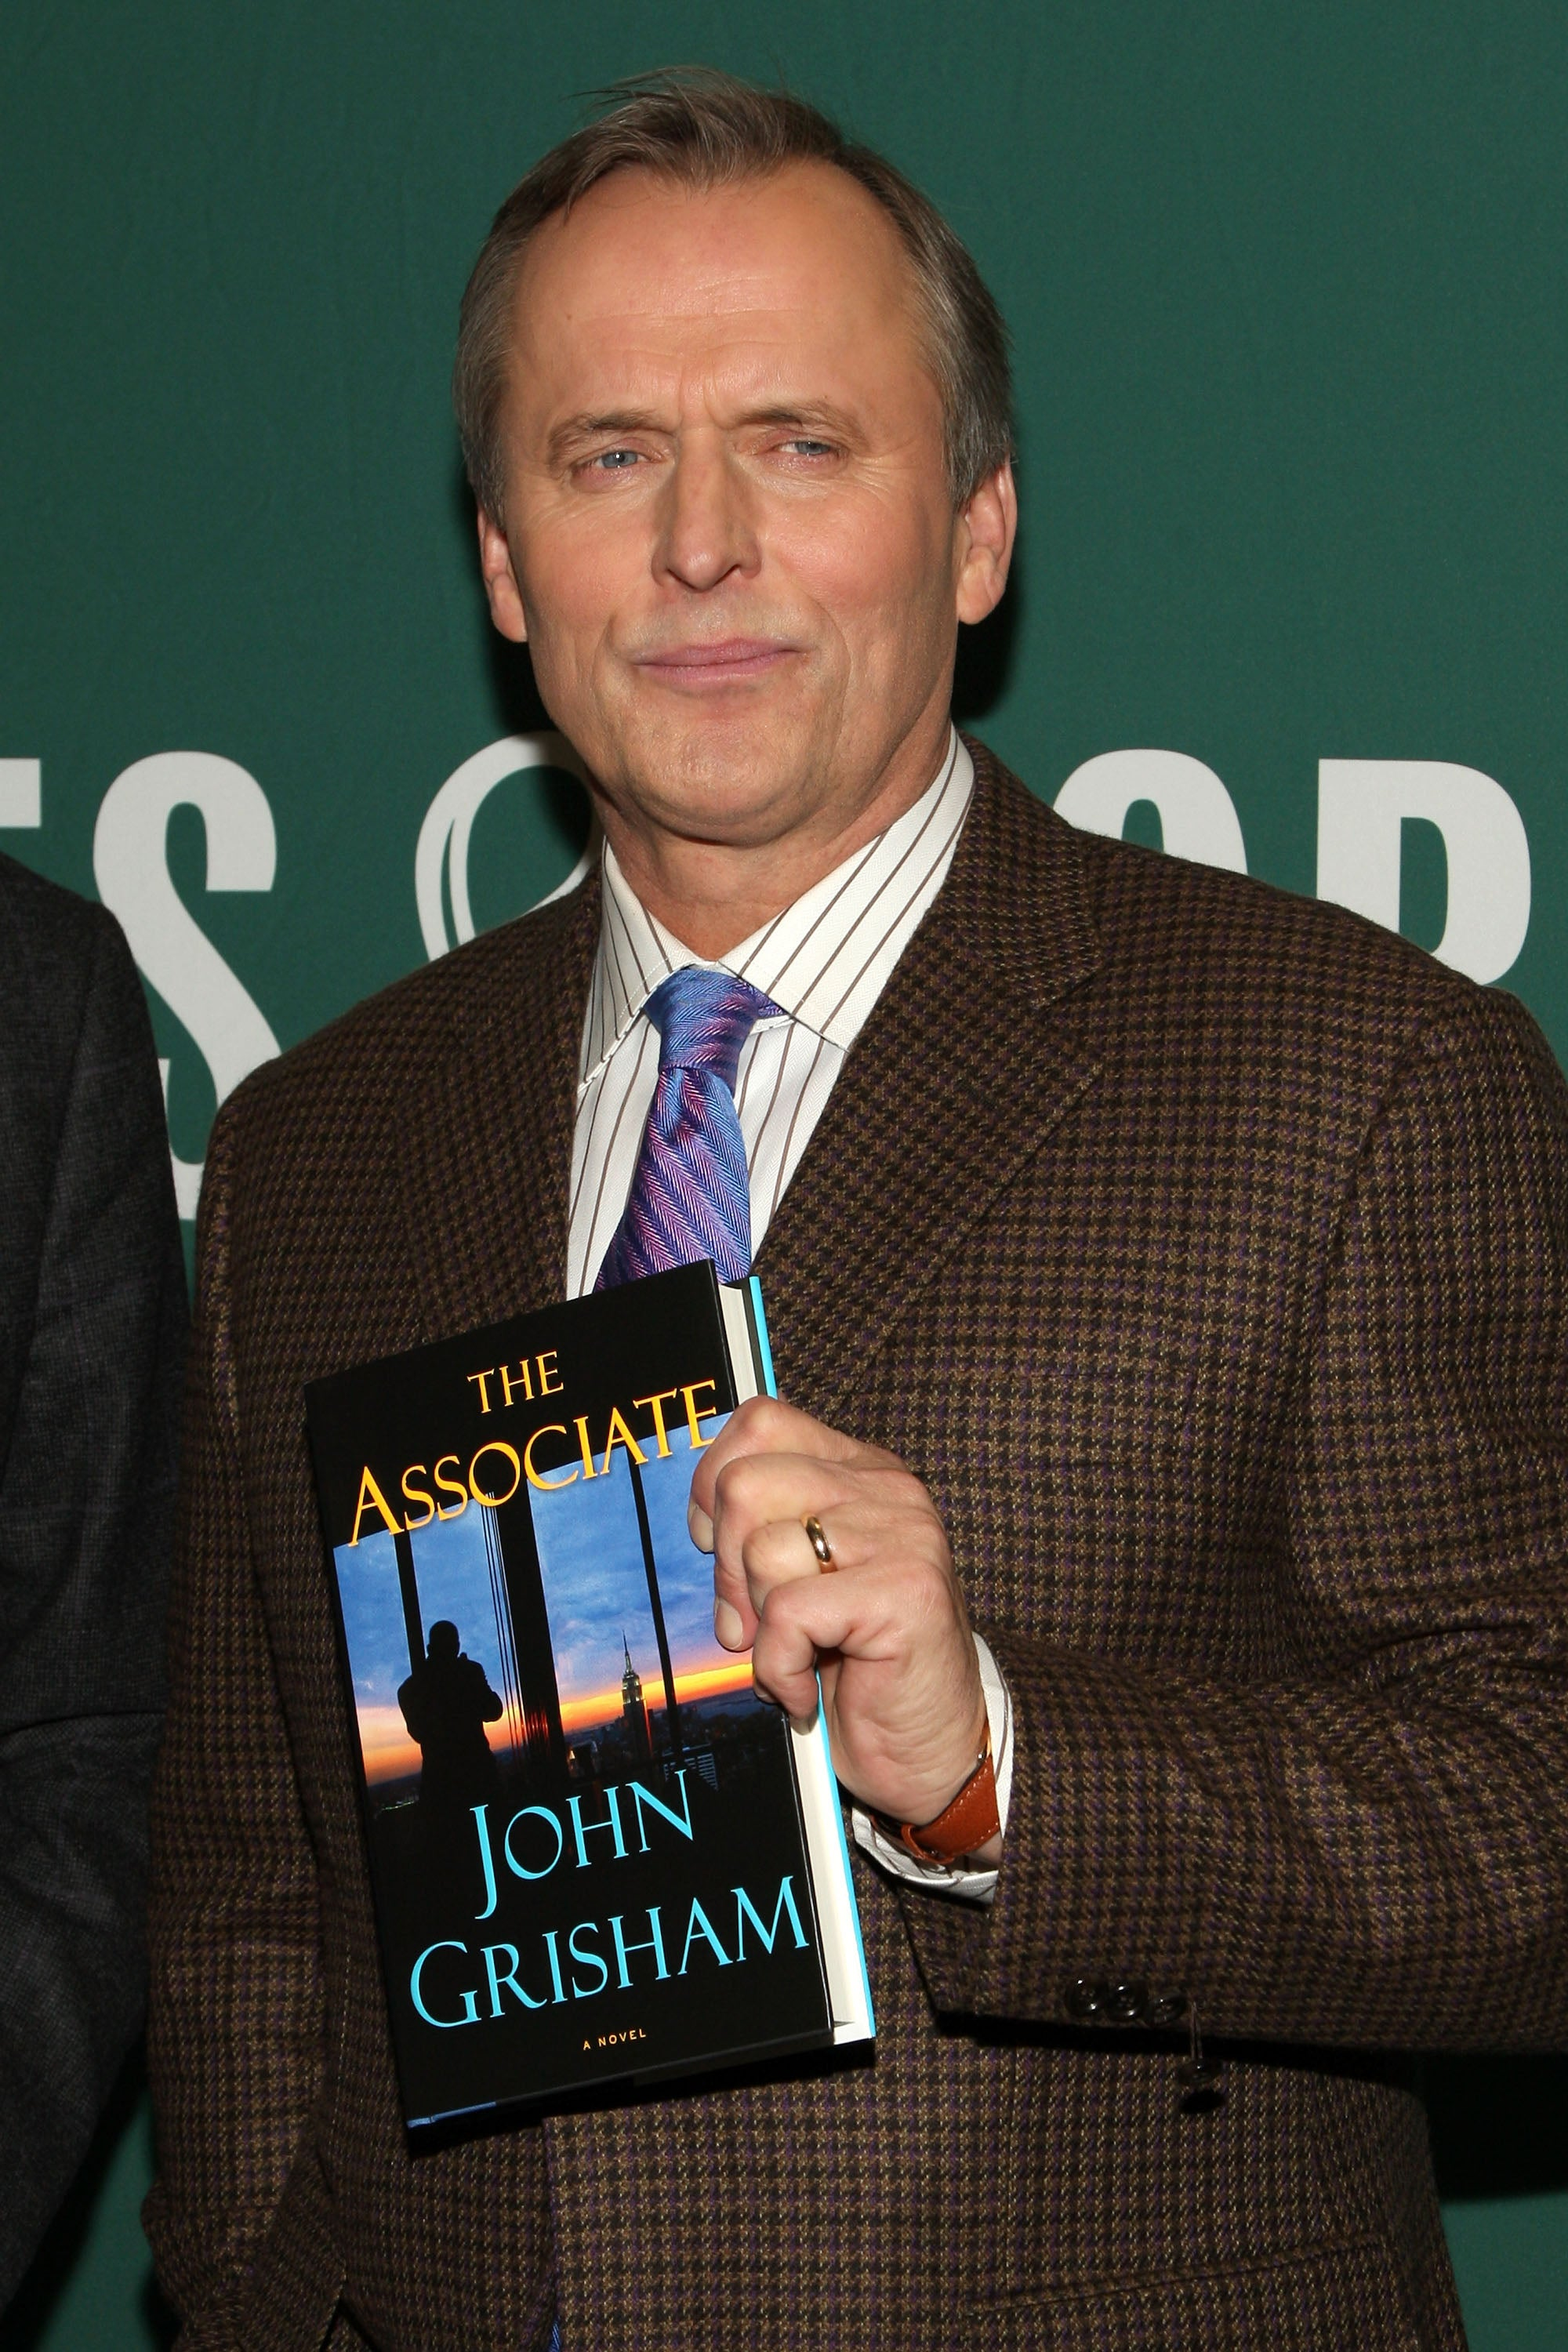 john grisham the client downloadjohn grisham the firm, john grisham the client, john grisham books, john grisham the client read online, john grisham books free download, john grisham the client pdf, john grisham the firm читать онлайн, john grisham a time to kill, john grisham theodore boone, john grisham the partner, john grisham pdf, john grisham the client download, john grisham the firm скачать, john grisham a painted house, john grisham whistler, john grisham biography, john grisham skipping christmas, john grisham interview, john grisham novels, john grisham the broker pdf